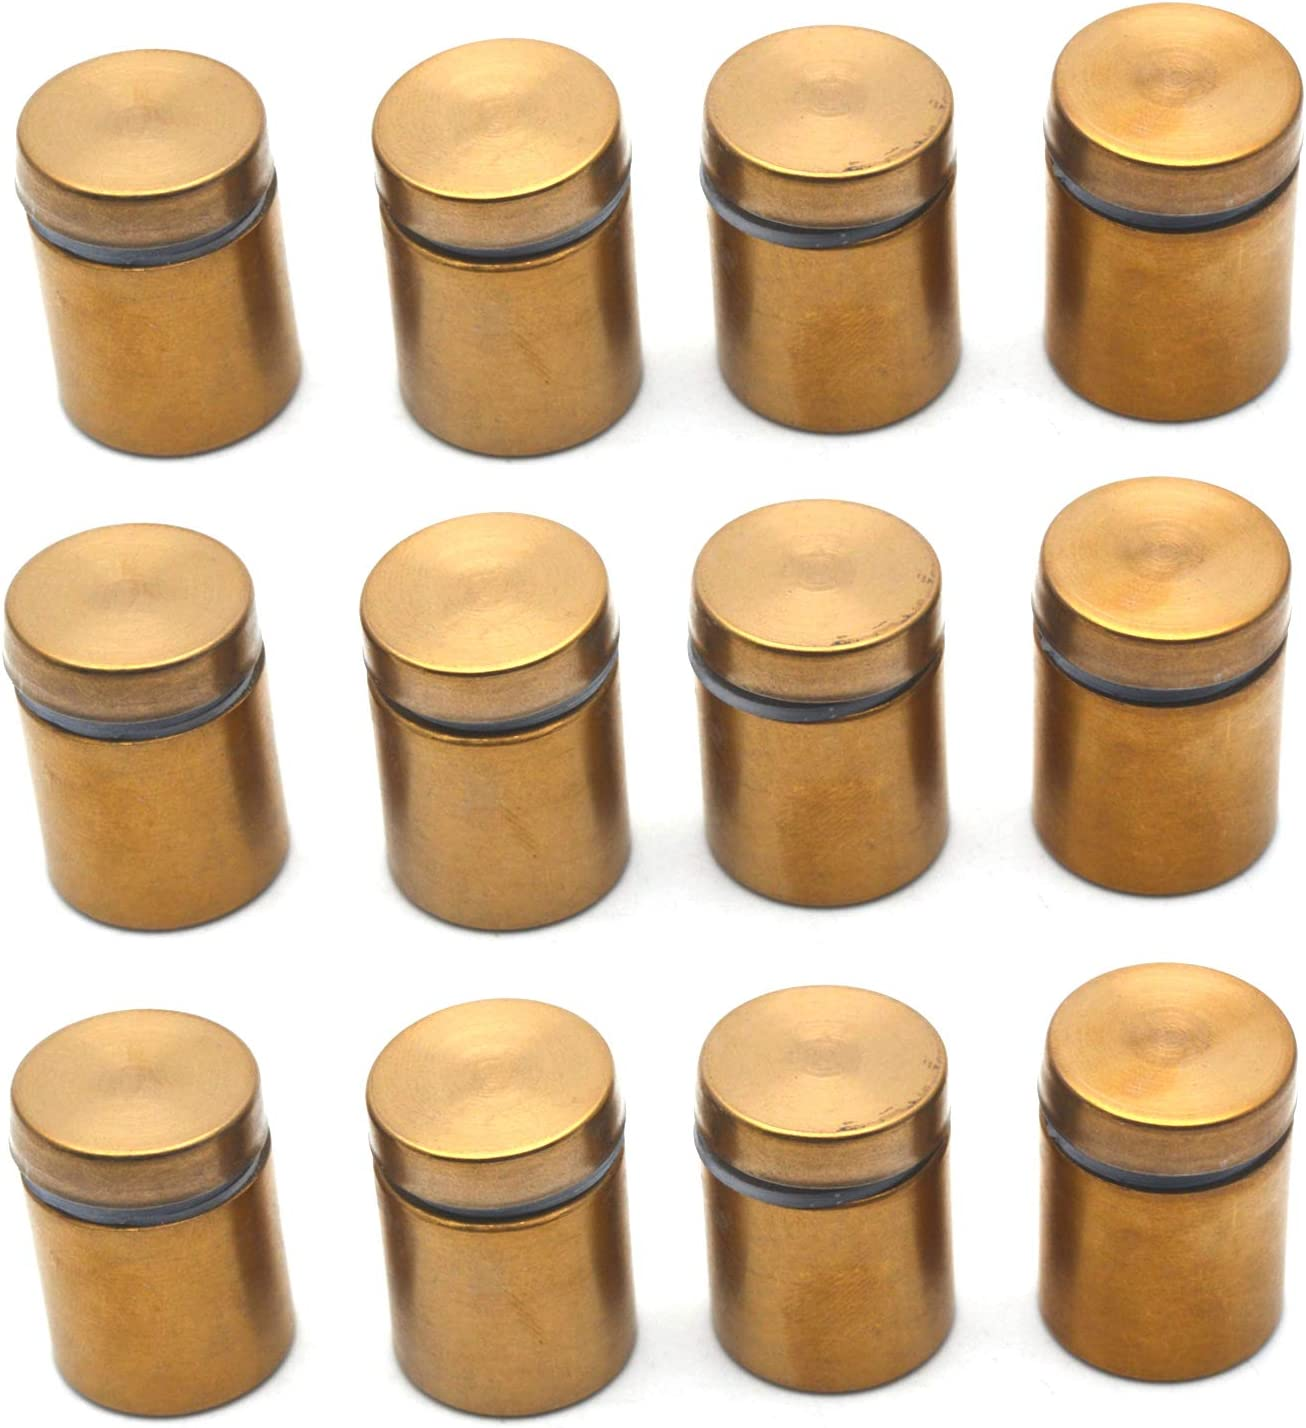 16mmx24mm Stainless Steel Advertise Glass Standoff Pin Fixing Mount Bolt 8pcs